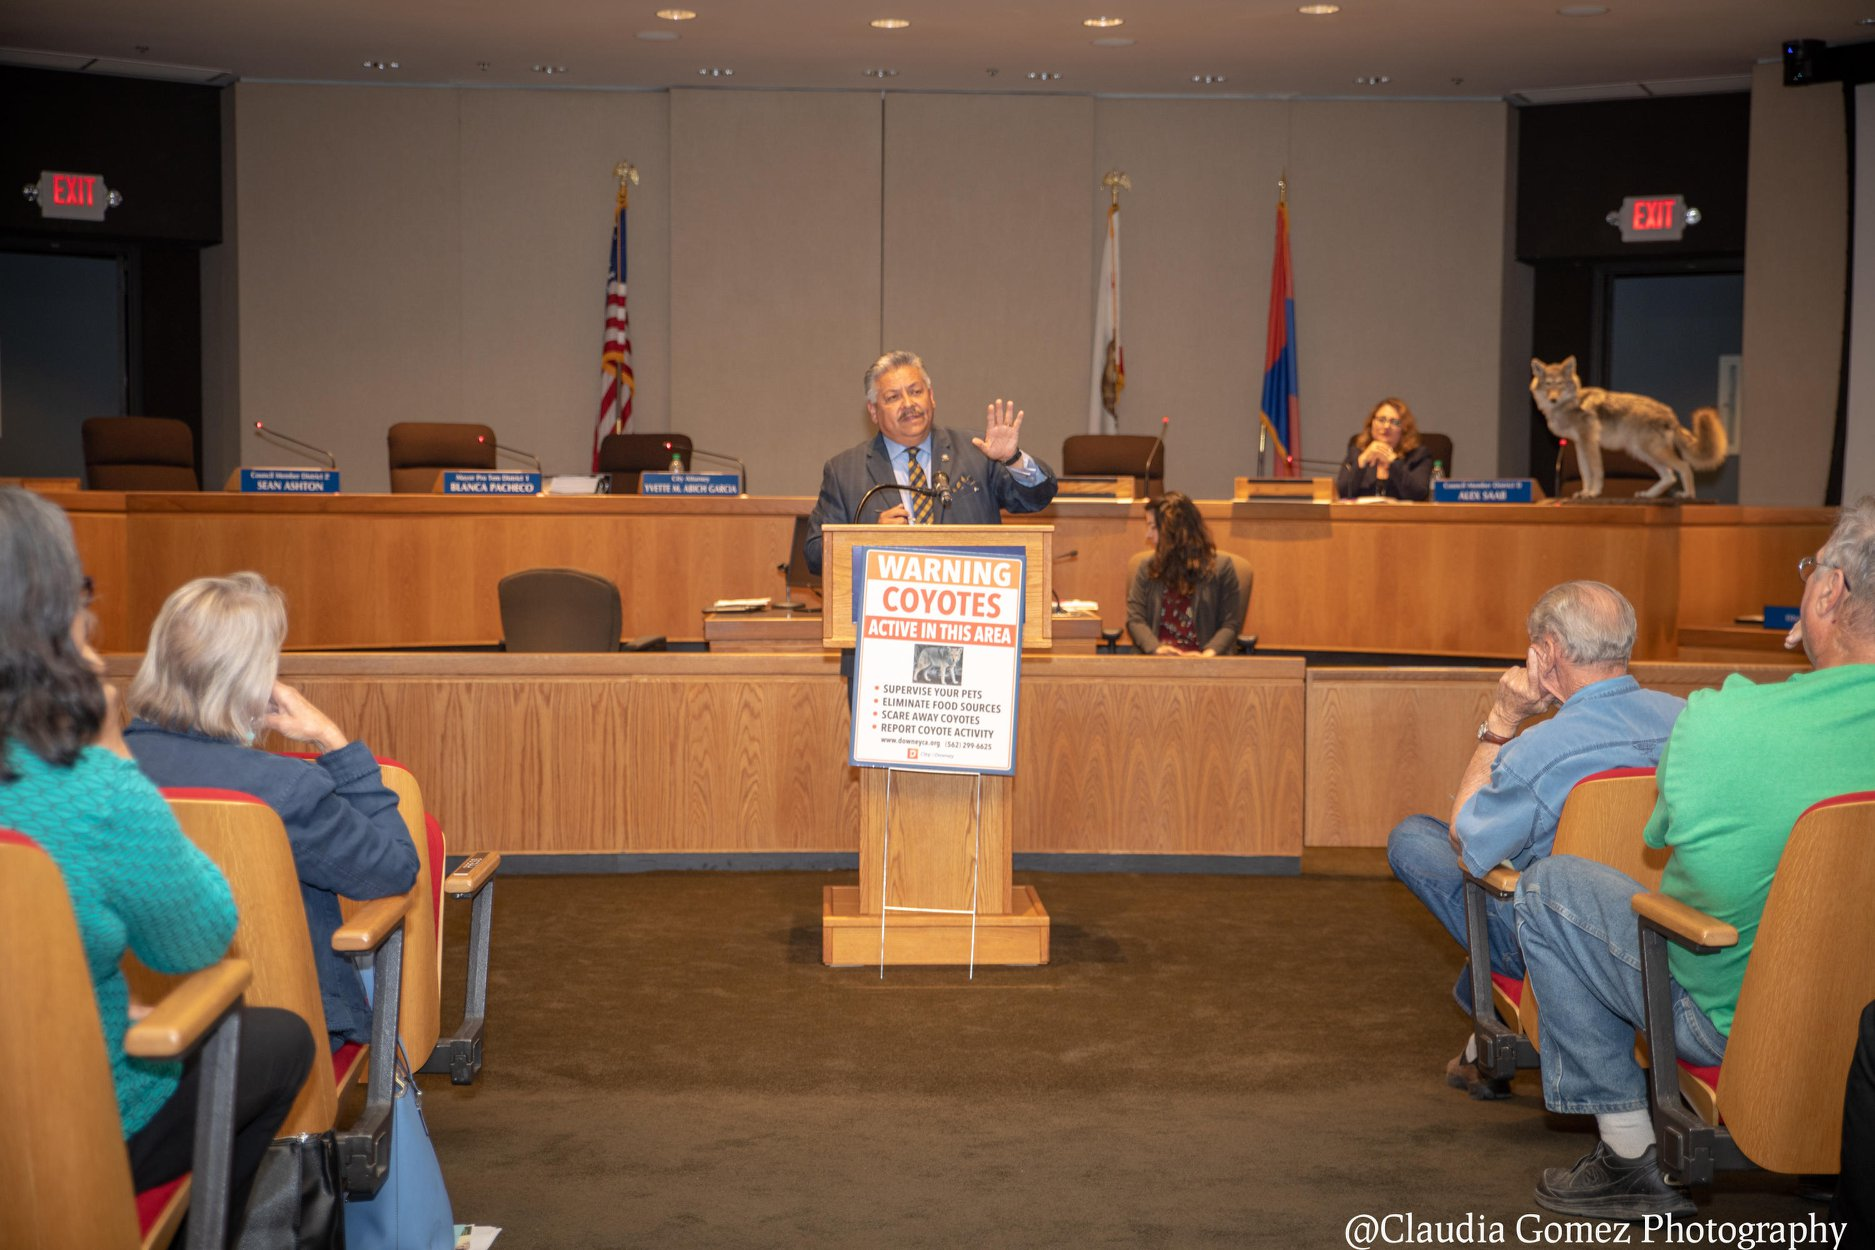 PHOTO BY CLAUDIA GOMEZ   Mayor Rick Rodriguez speaks at a recent town hall meeting where the only item on the agenda was coyotes.